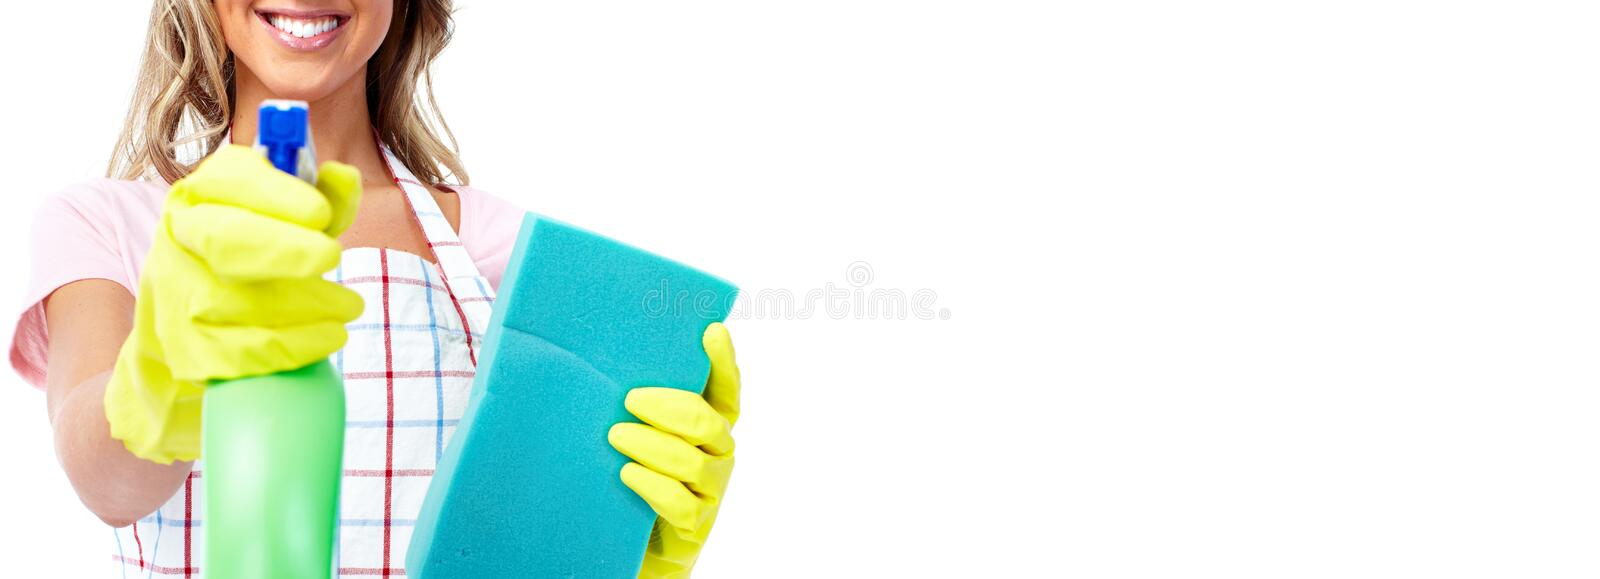 House cleaning. Cleaner woman hands with tools over abstract banner background stock image